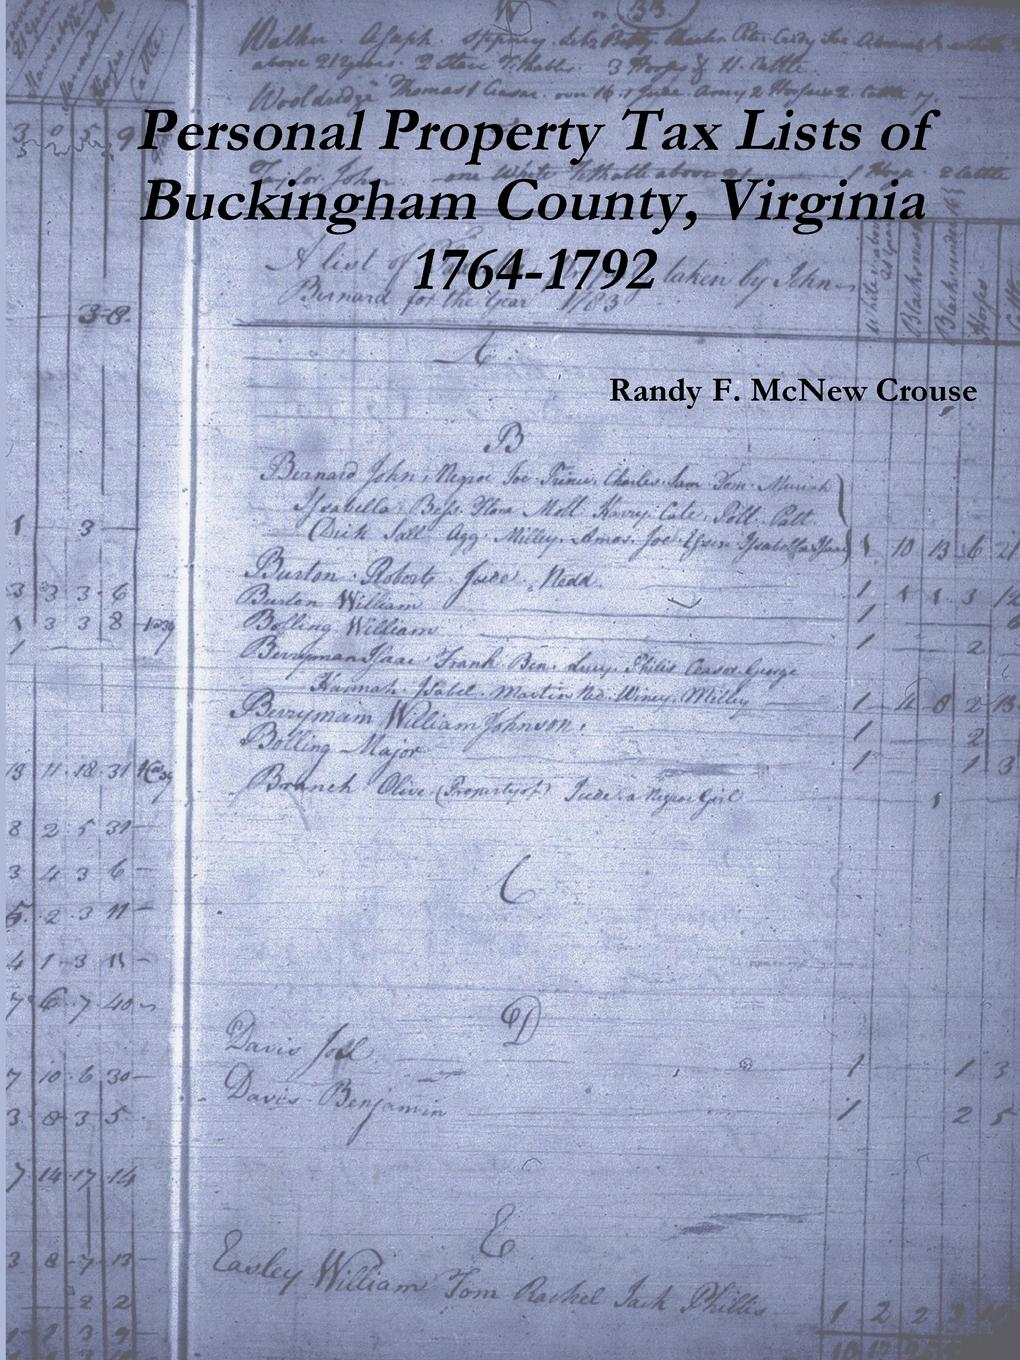 Randy F. McNew Crouse Personal Property Tax Lists of Buckingham County, Virginia 1764-1792